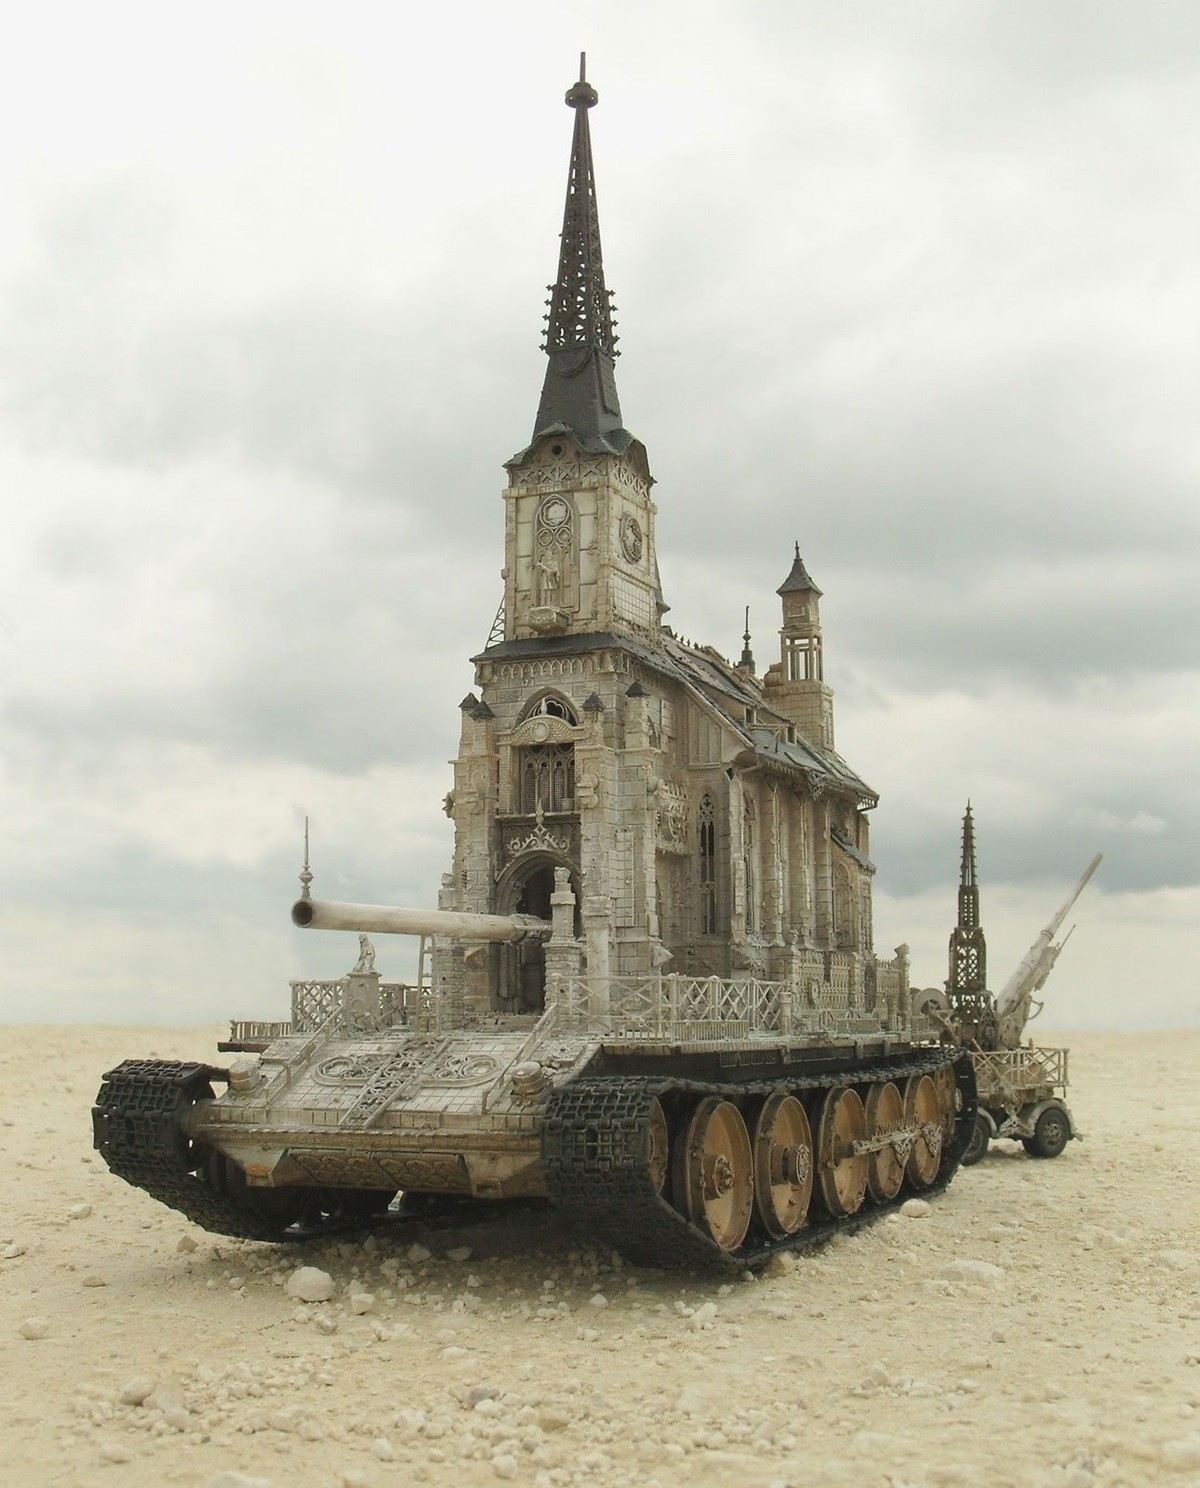 Warhammer 40k Tank Design. .. Still looks more reasonable than some of the tanks in 40K to be honest.